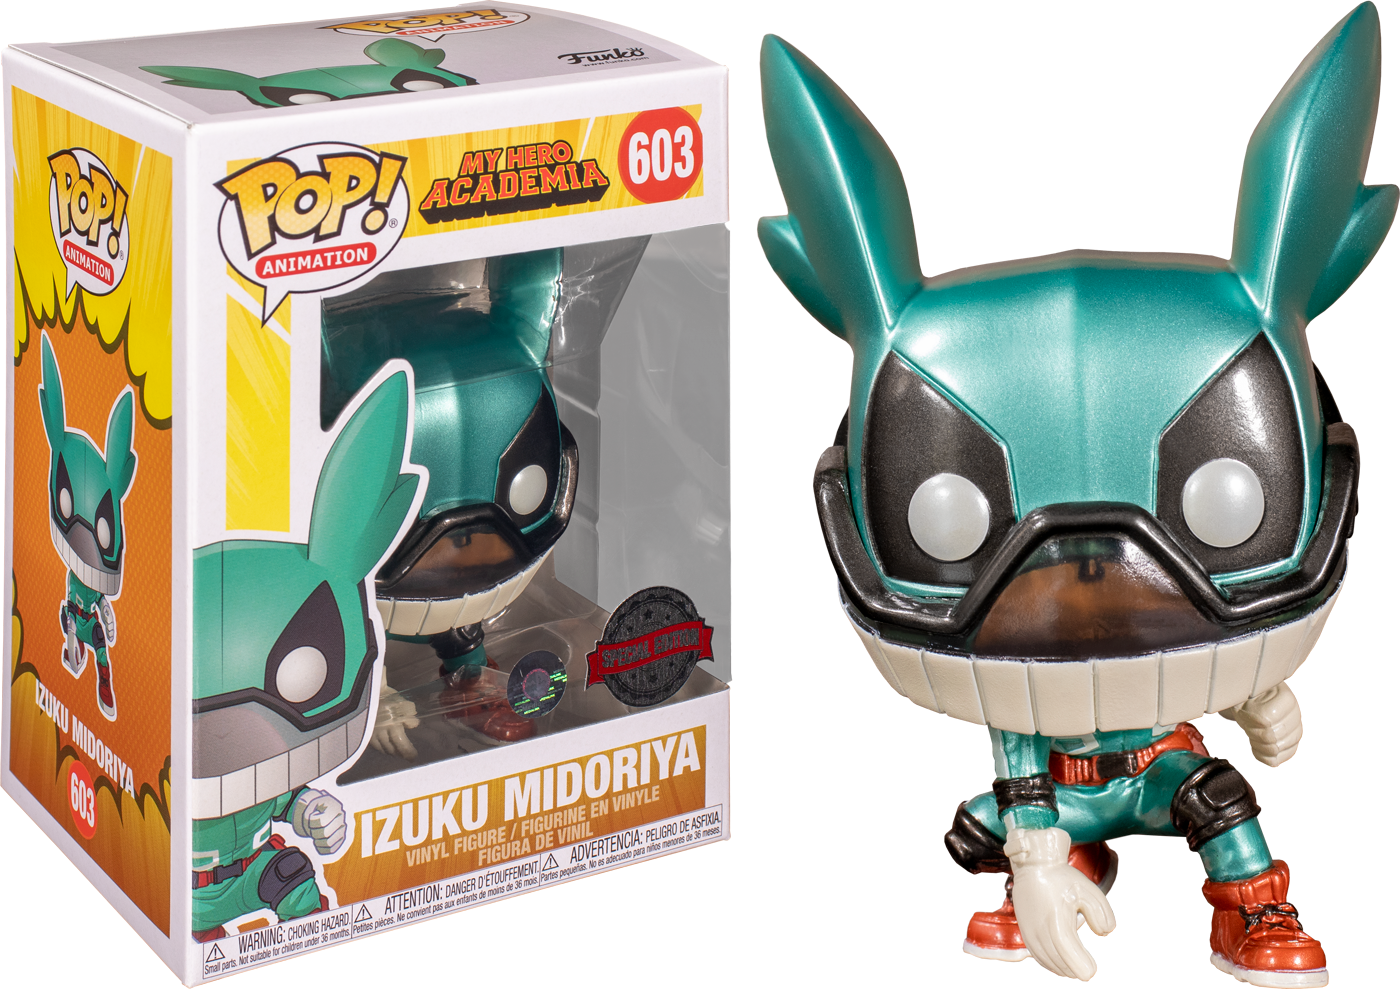 My Hero Academia - Izuku Midoriya (Deku with Helmet) Metallic Pop! Vinyl Figure